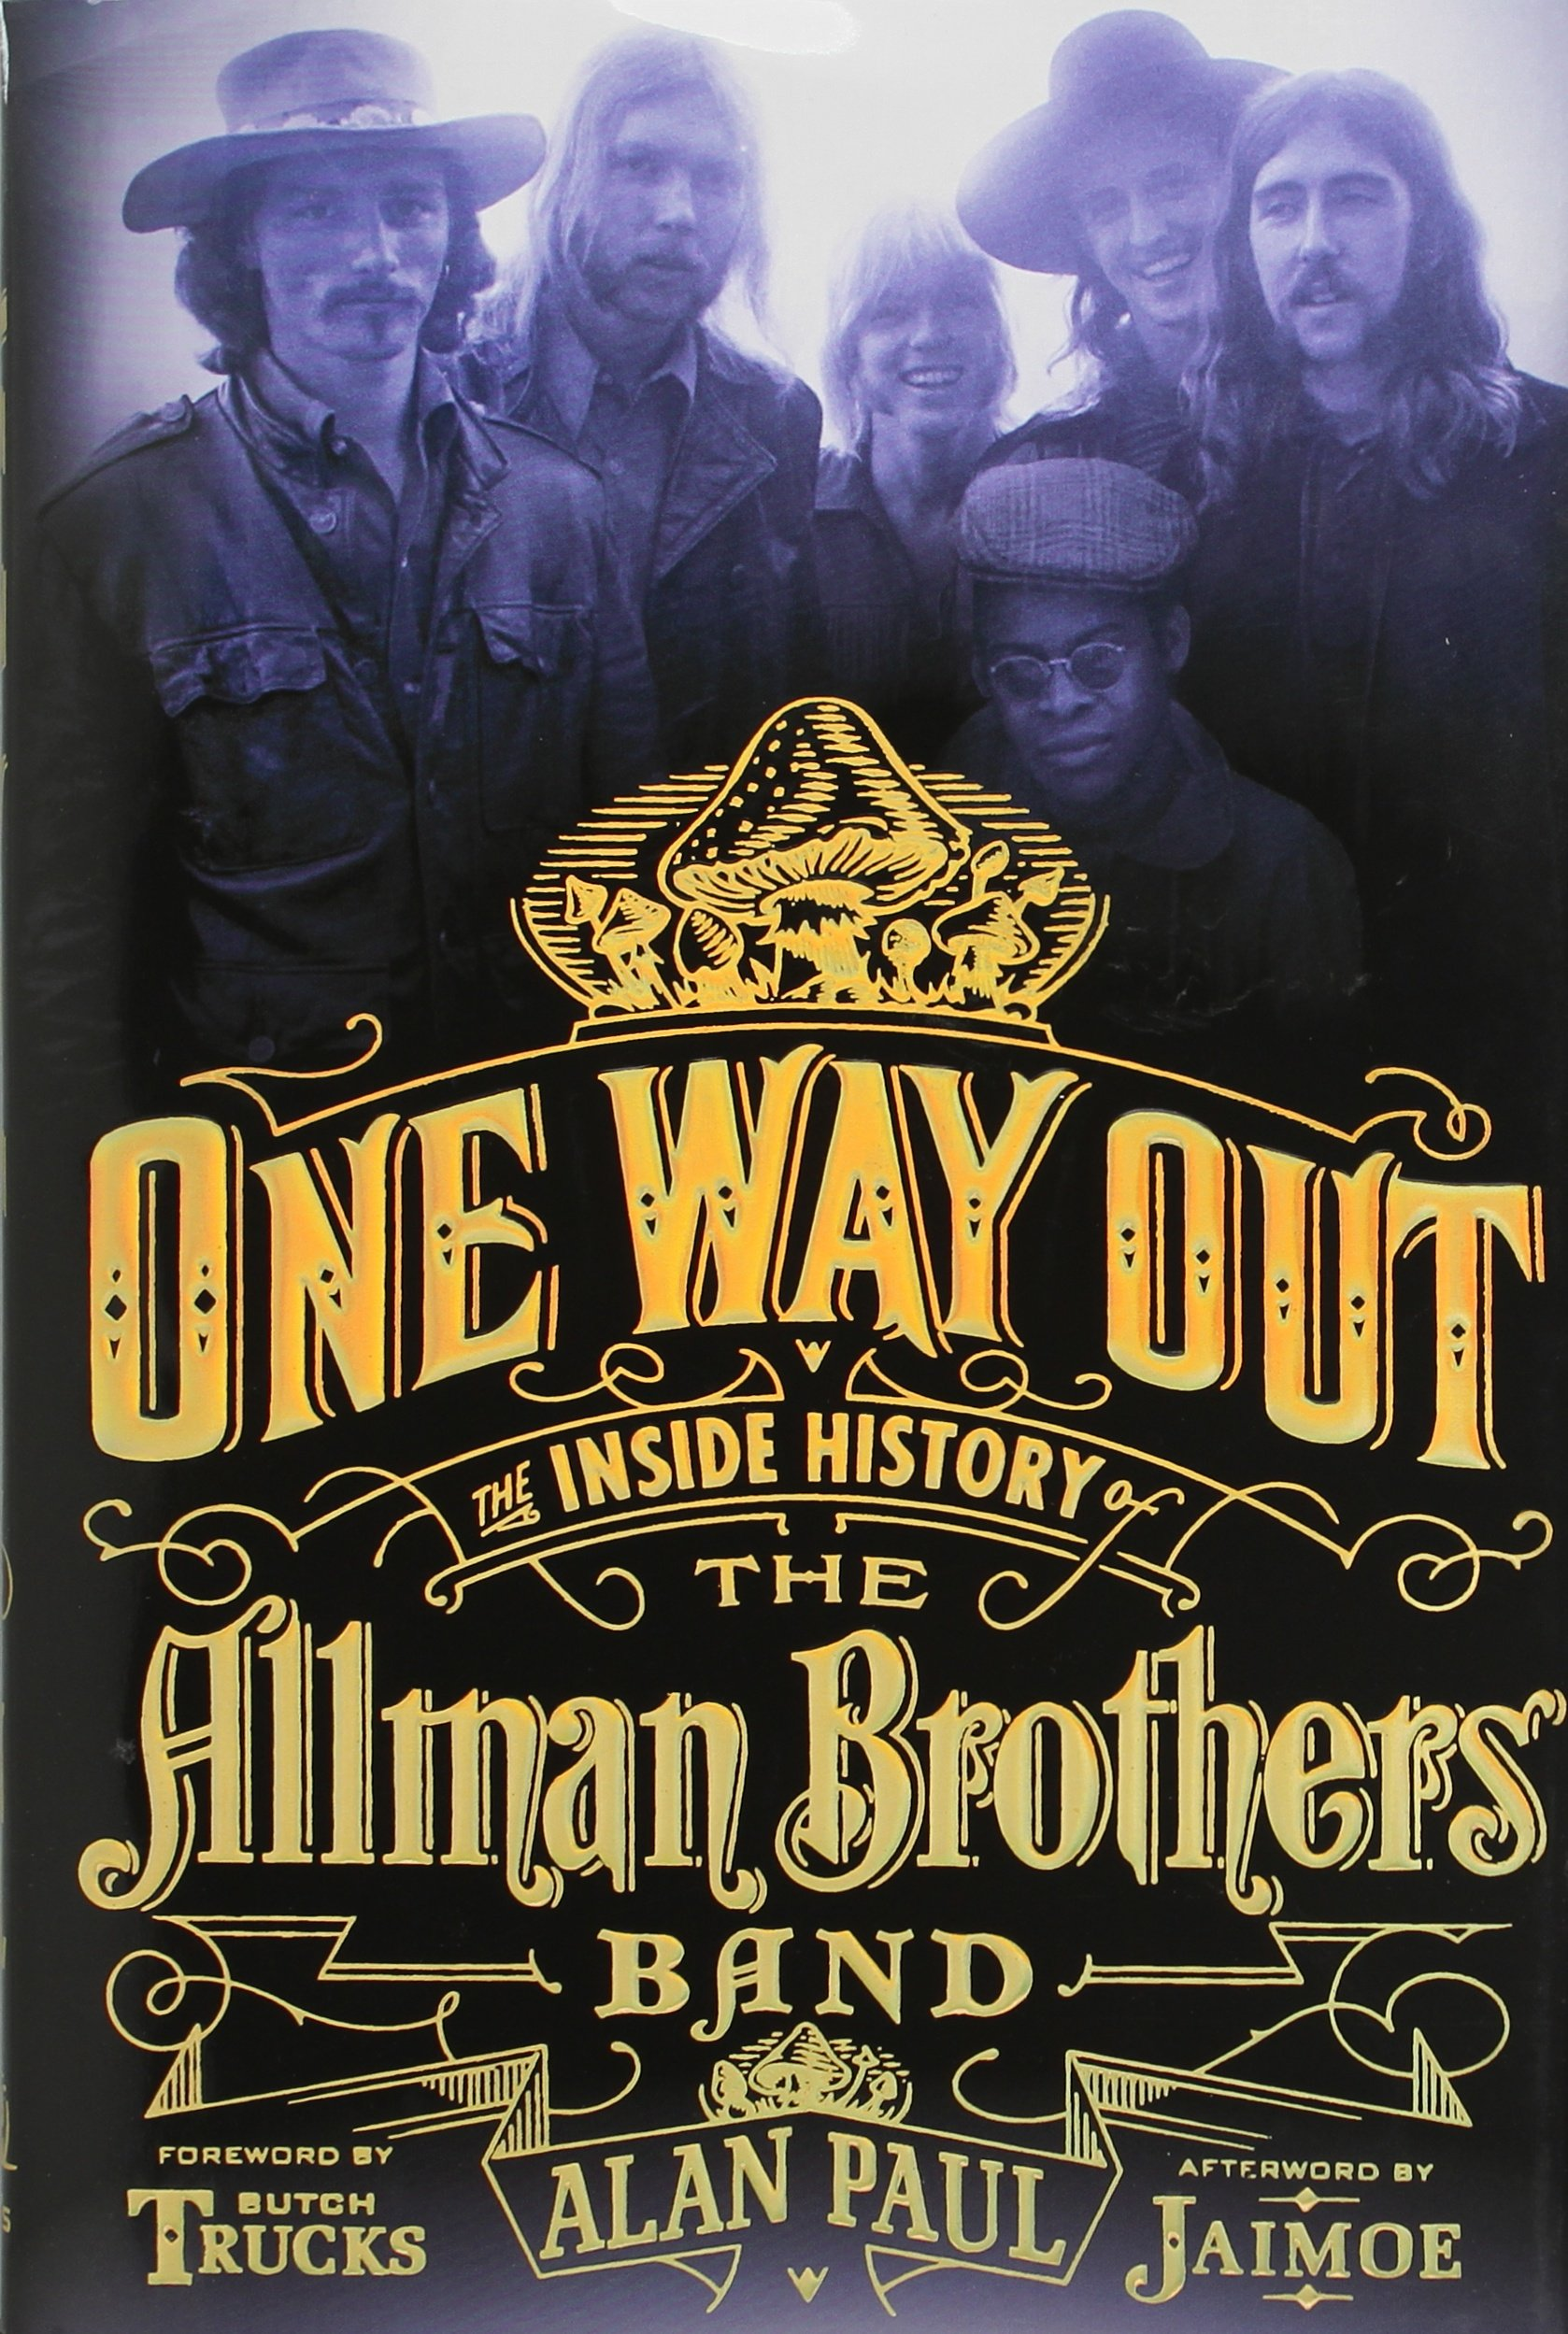 Allman Bros Band - One Way Out - 1971